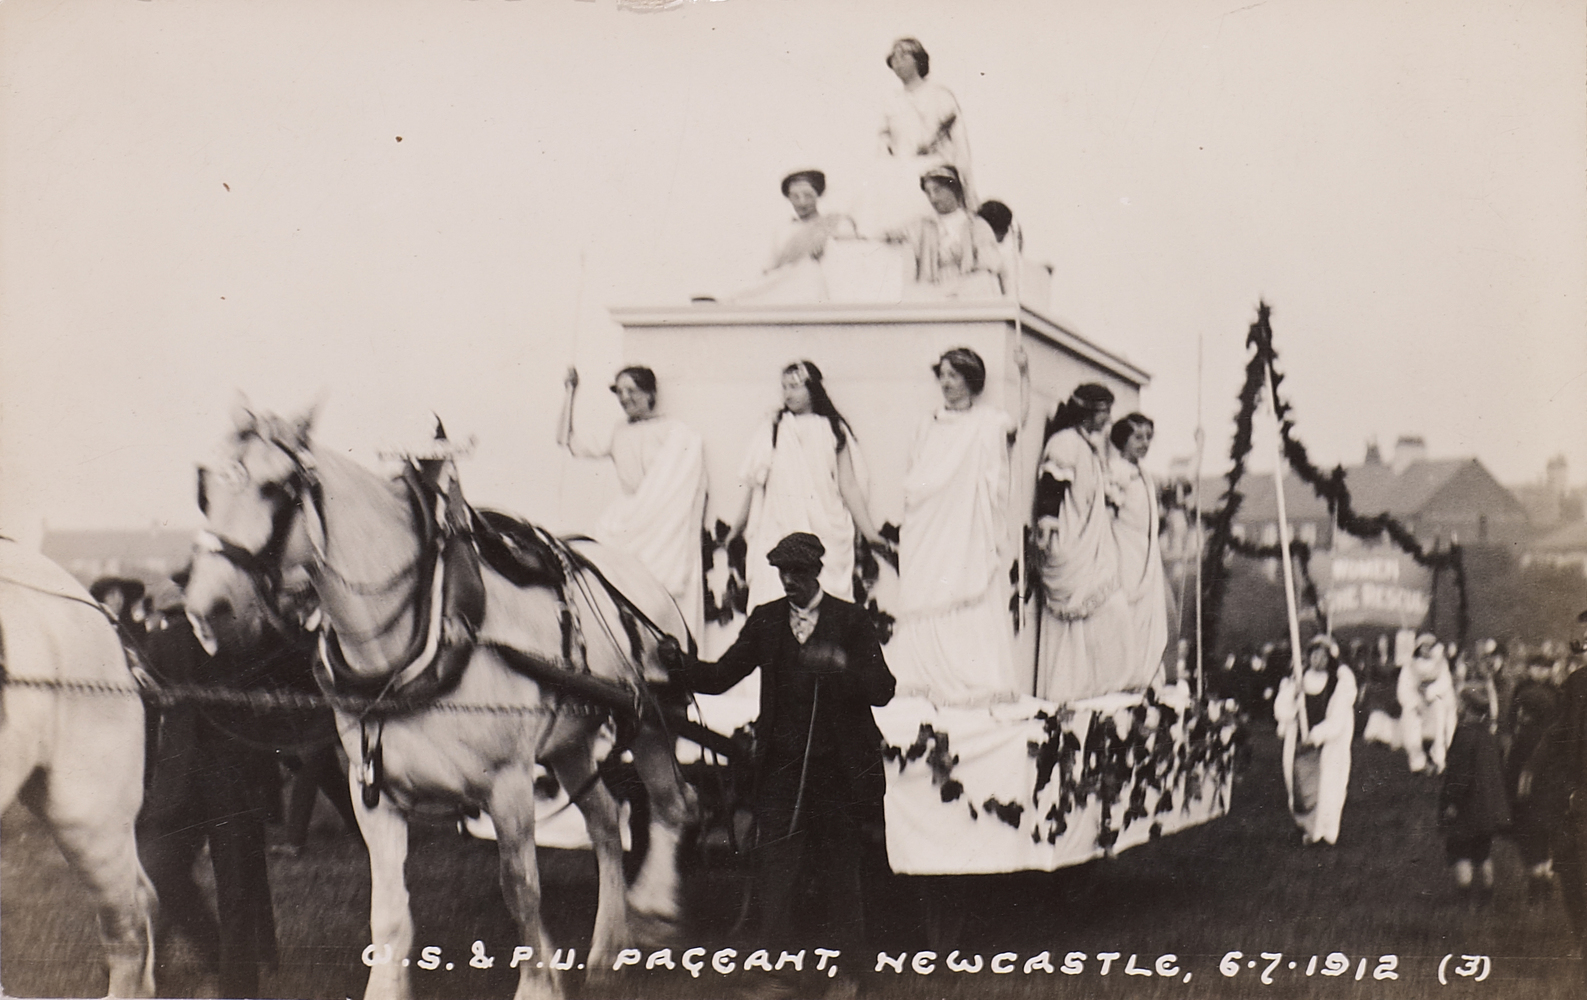 Postcard, WSPU Pageant, Newcastle 6 July 1912